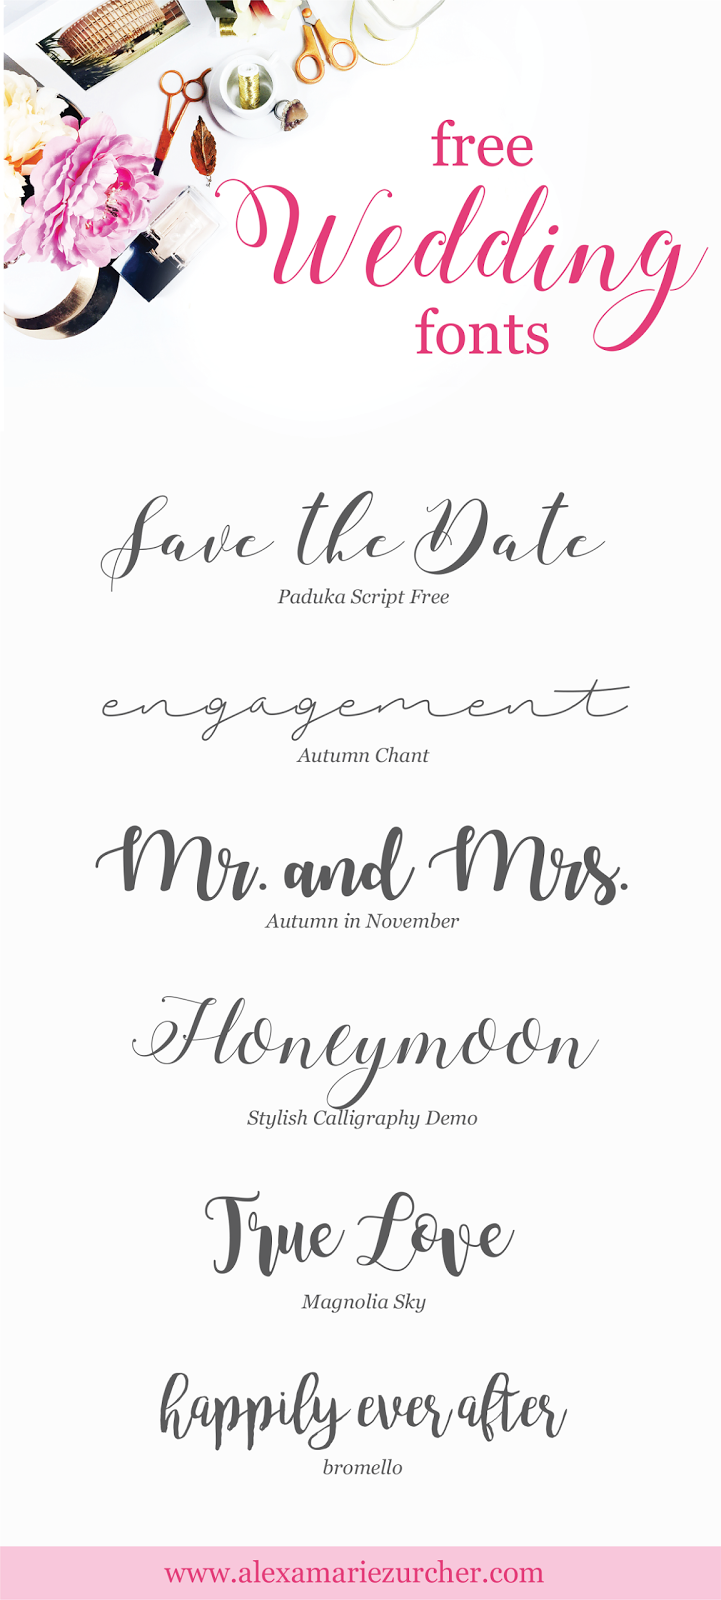 I M A Collector Of Fonts Especially Free Ones And Thought These Would Be Adorable On Wedding Invitation Or Signage All Are